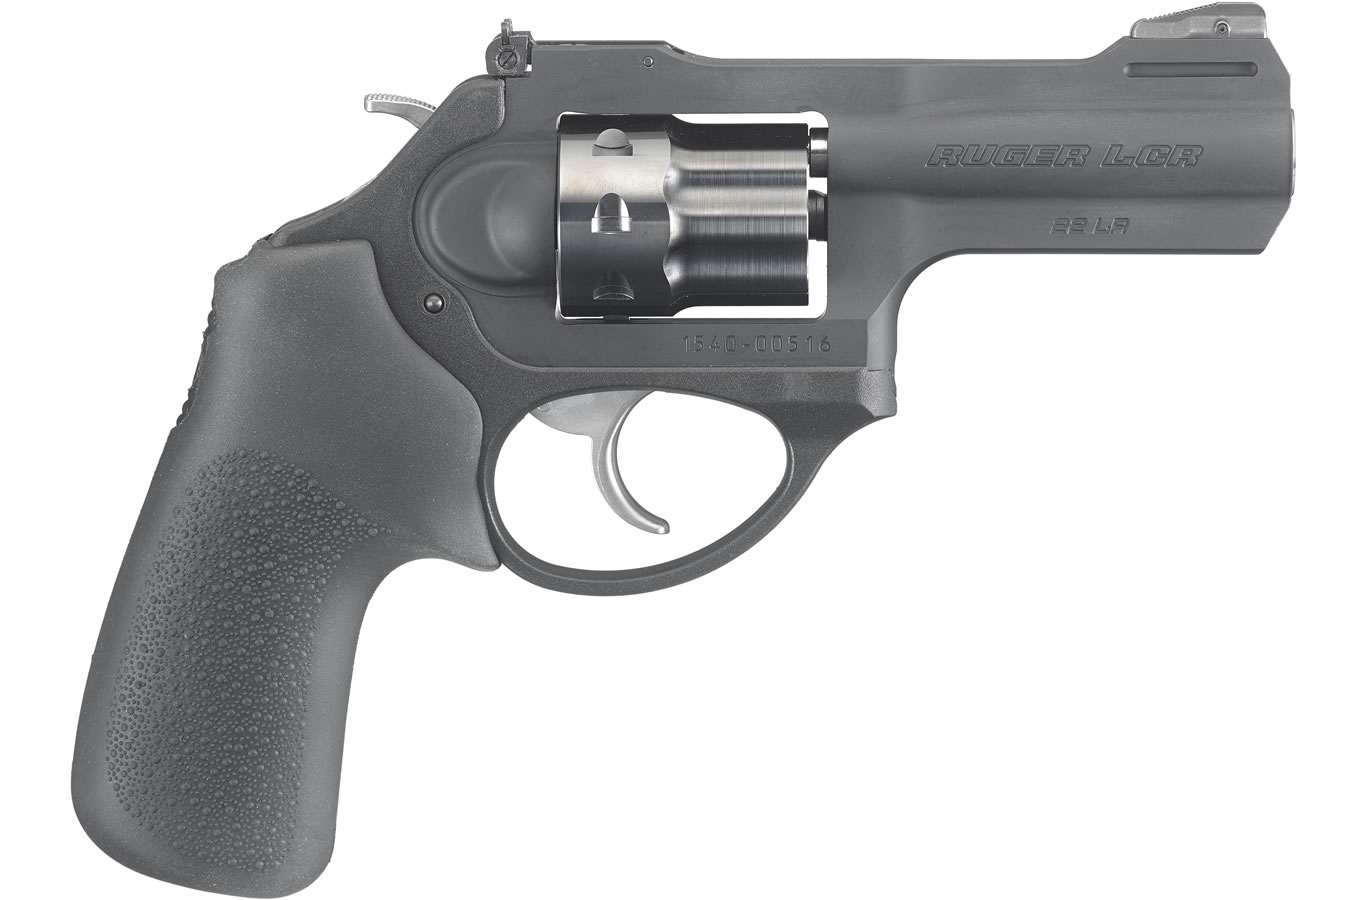 LCRX 22LR DOUBLE-ACTION REVOLVER